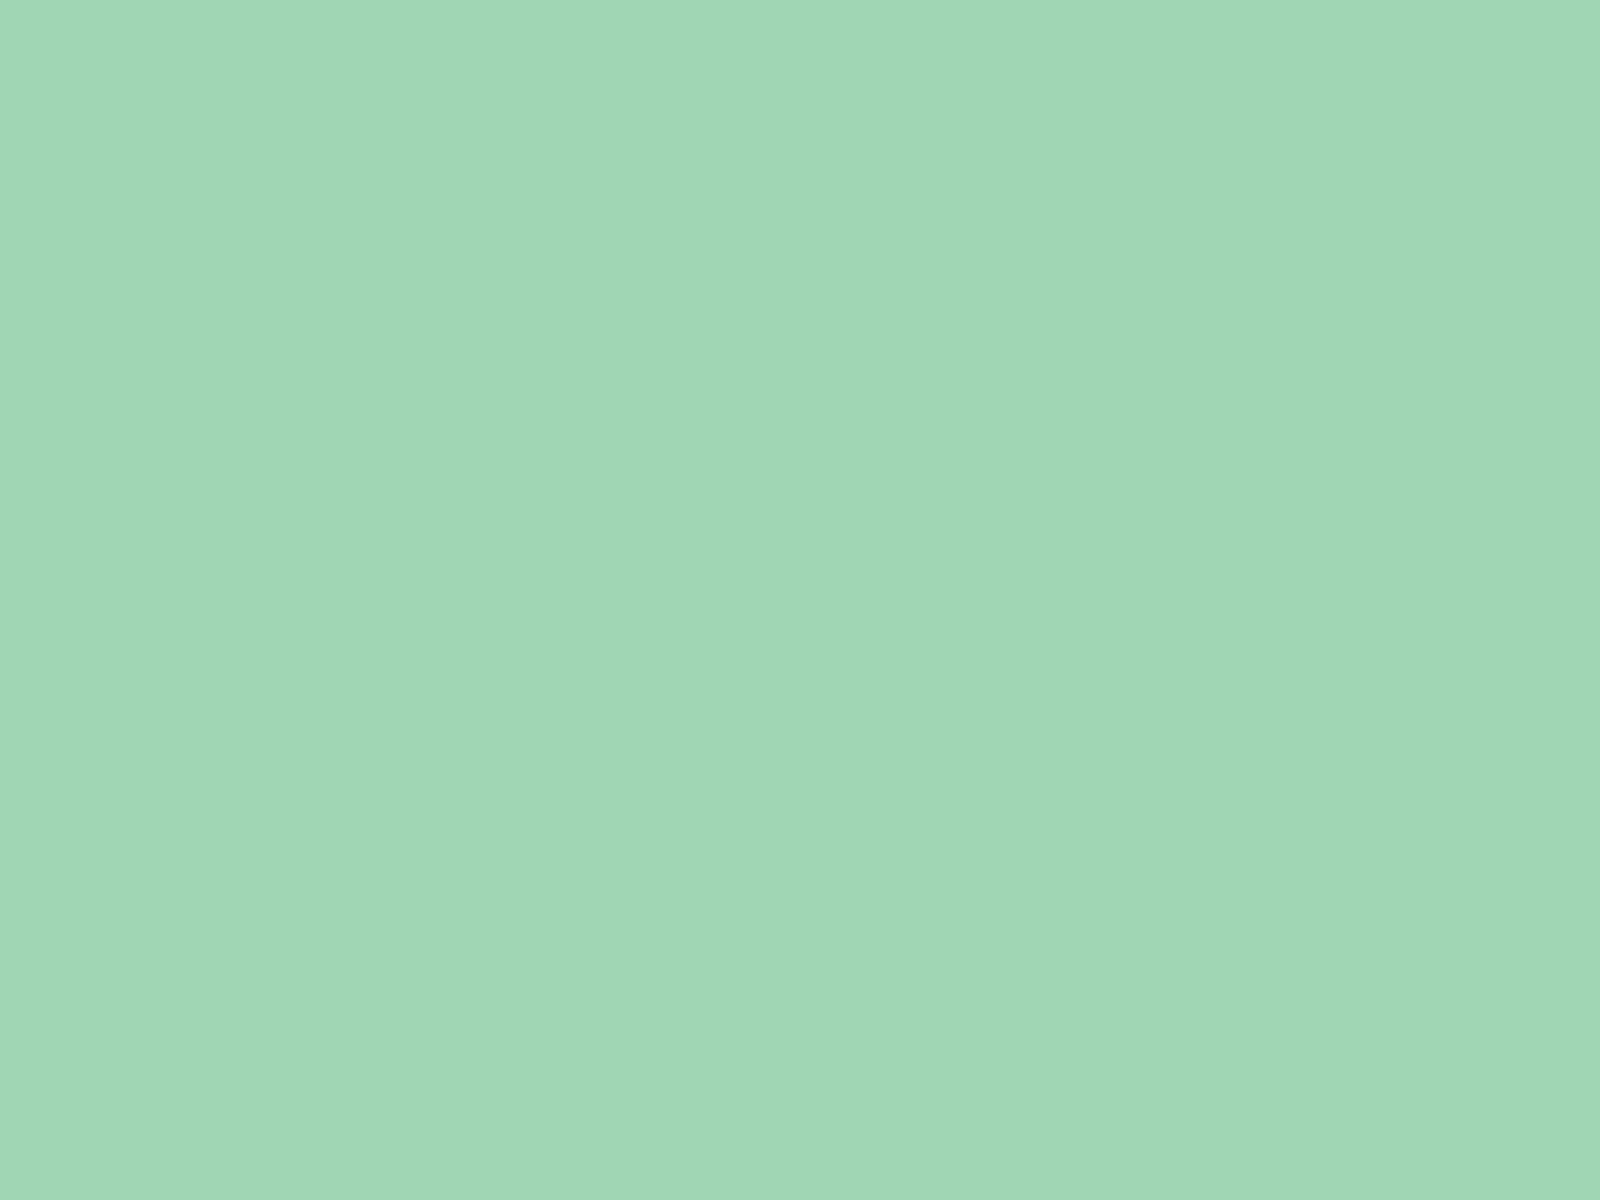 1600x1200 Turquoise Green Solid Color Background